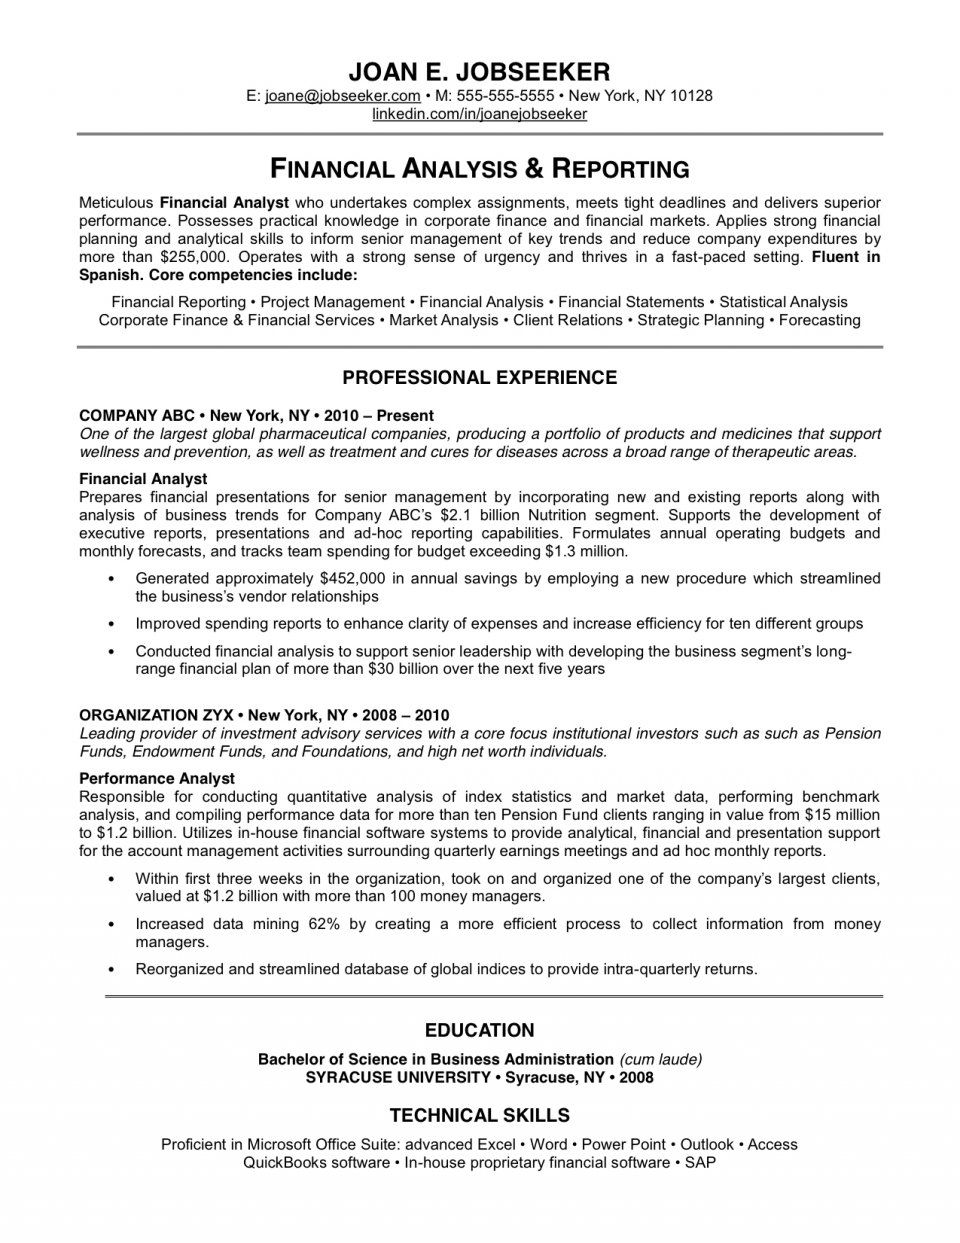 Resume Writing Examples 19 Reasons Why This Is An Excellent Resume  Job Resume Examples